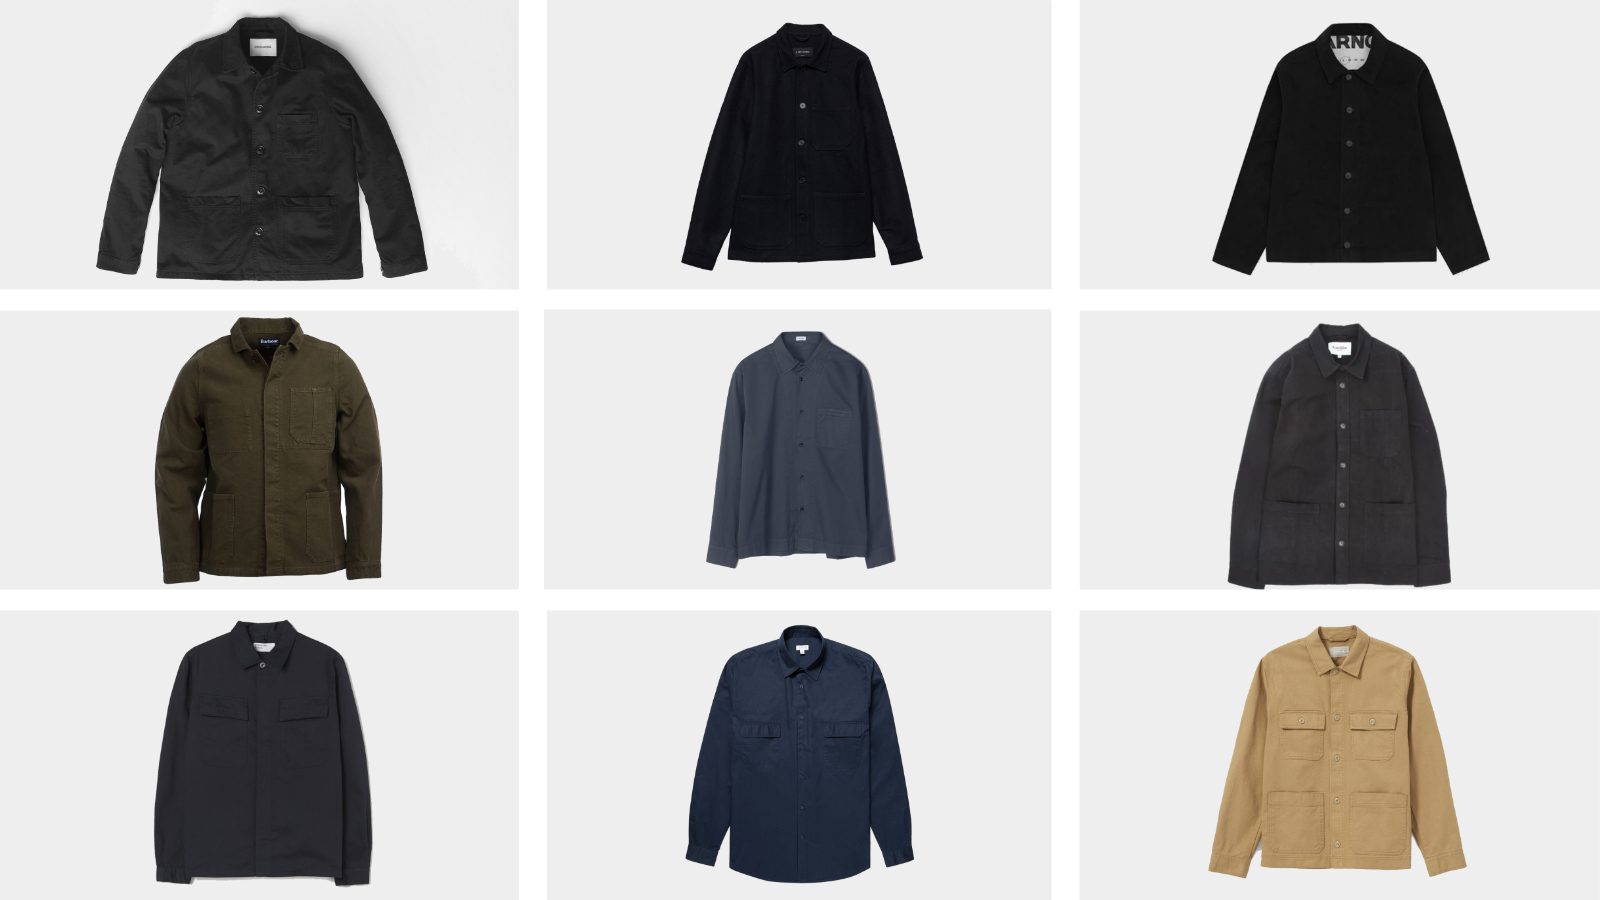 10 Best Overshirts for Men and How to Wear this Perfect Layering Piece